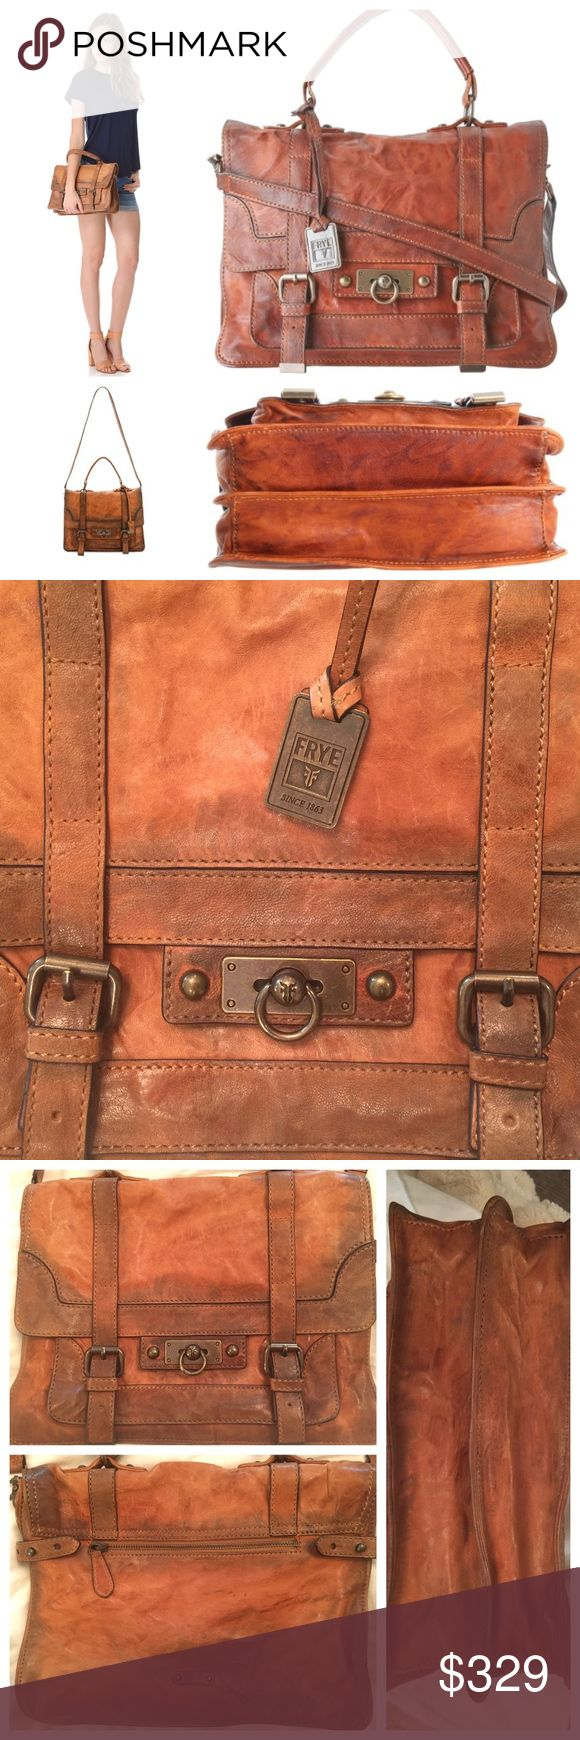 Frye Cameron Satchel in Rugged Camel, Medium Frye Cameron Satchel - very rugged, distressed leather with camel/saddle coloring. Rarely used. Good condition. (cover image=stock photos) Please refer to the last SIX photos listed for actual condition and coloring! Enlarge them on your device and ask questions if needed. The distressed leather coloring is how the purse appeared when purchased new. Equipped with top handle & detachable shoulder strap. Dust bag included. No trades  Approx…